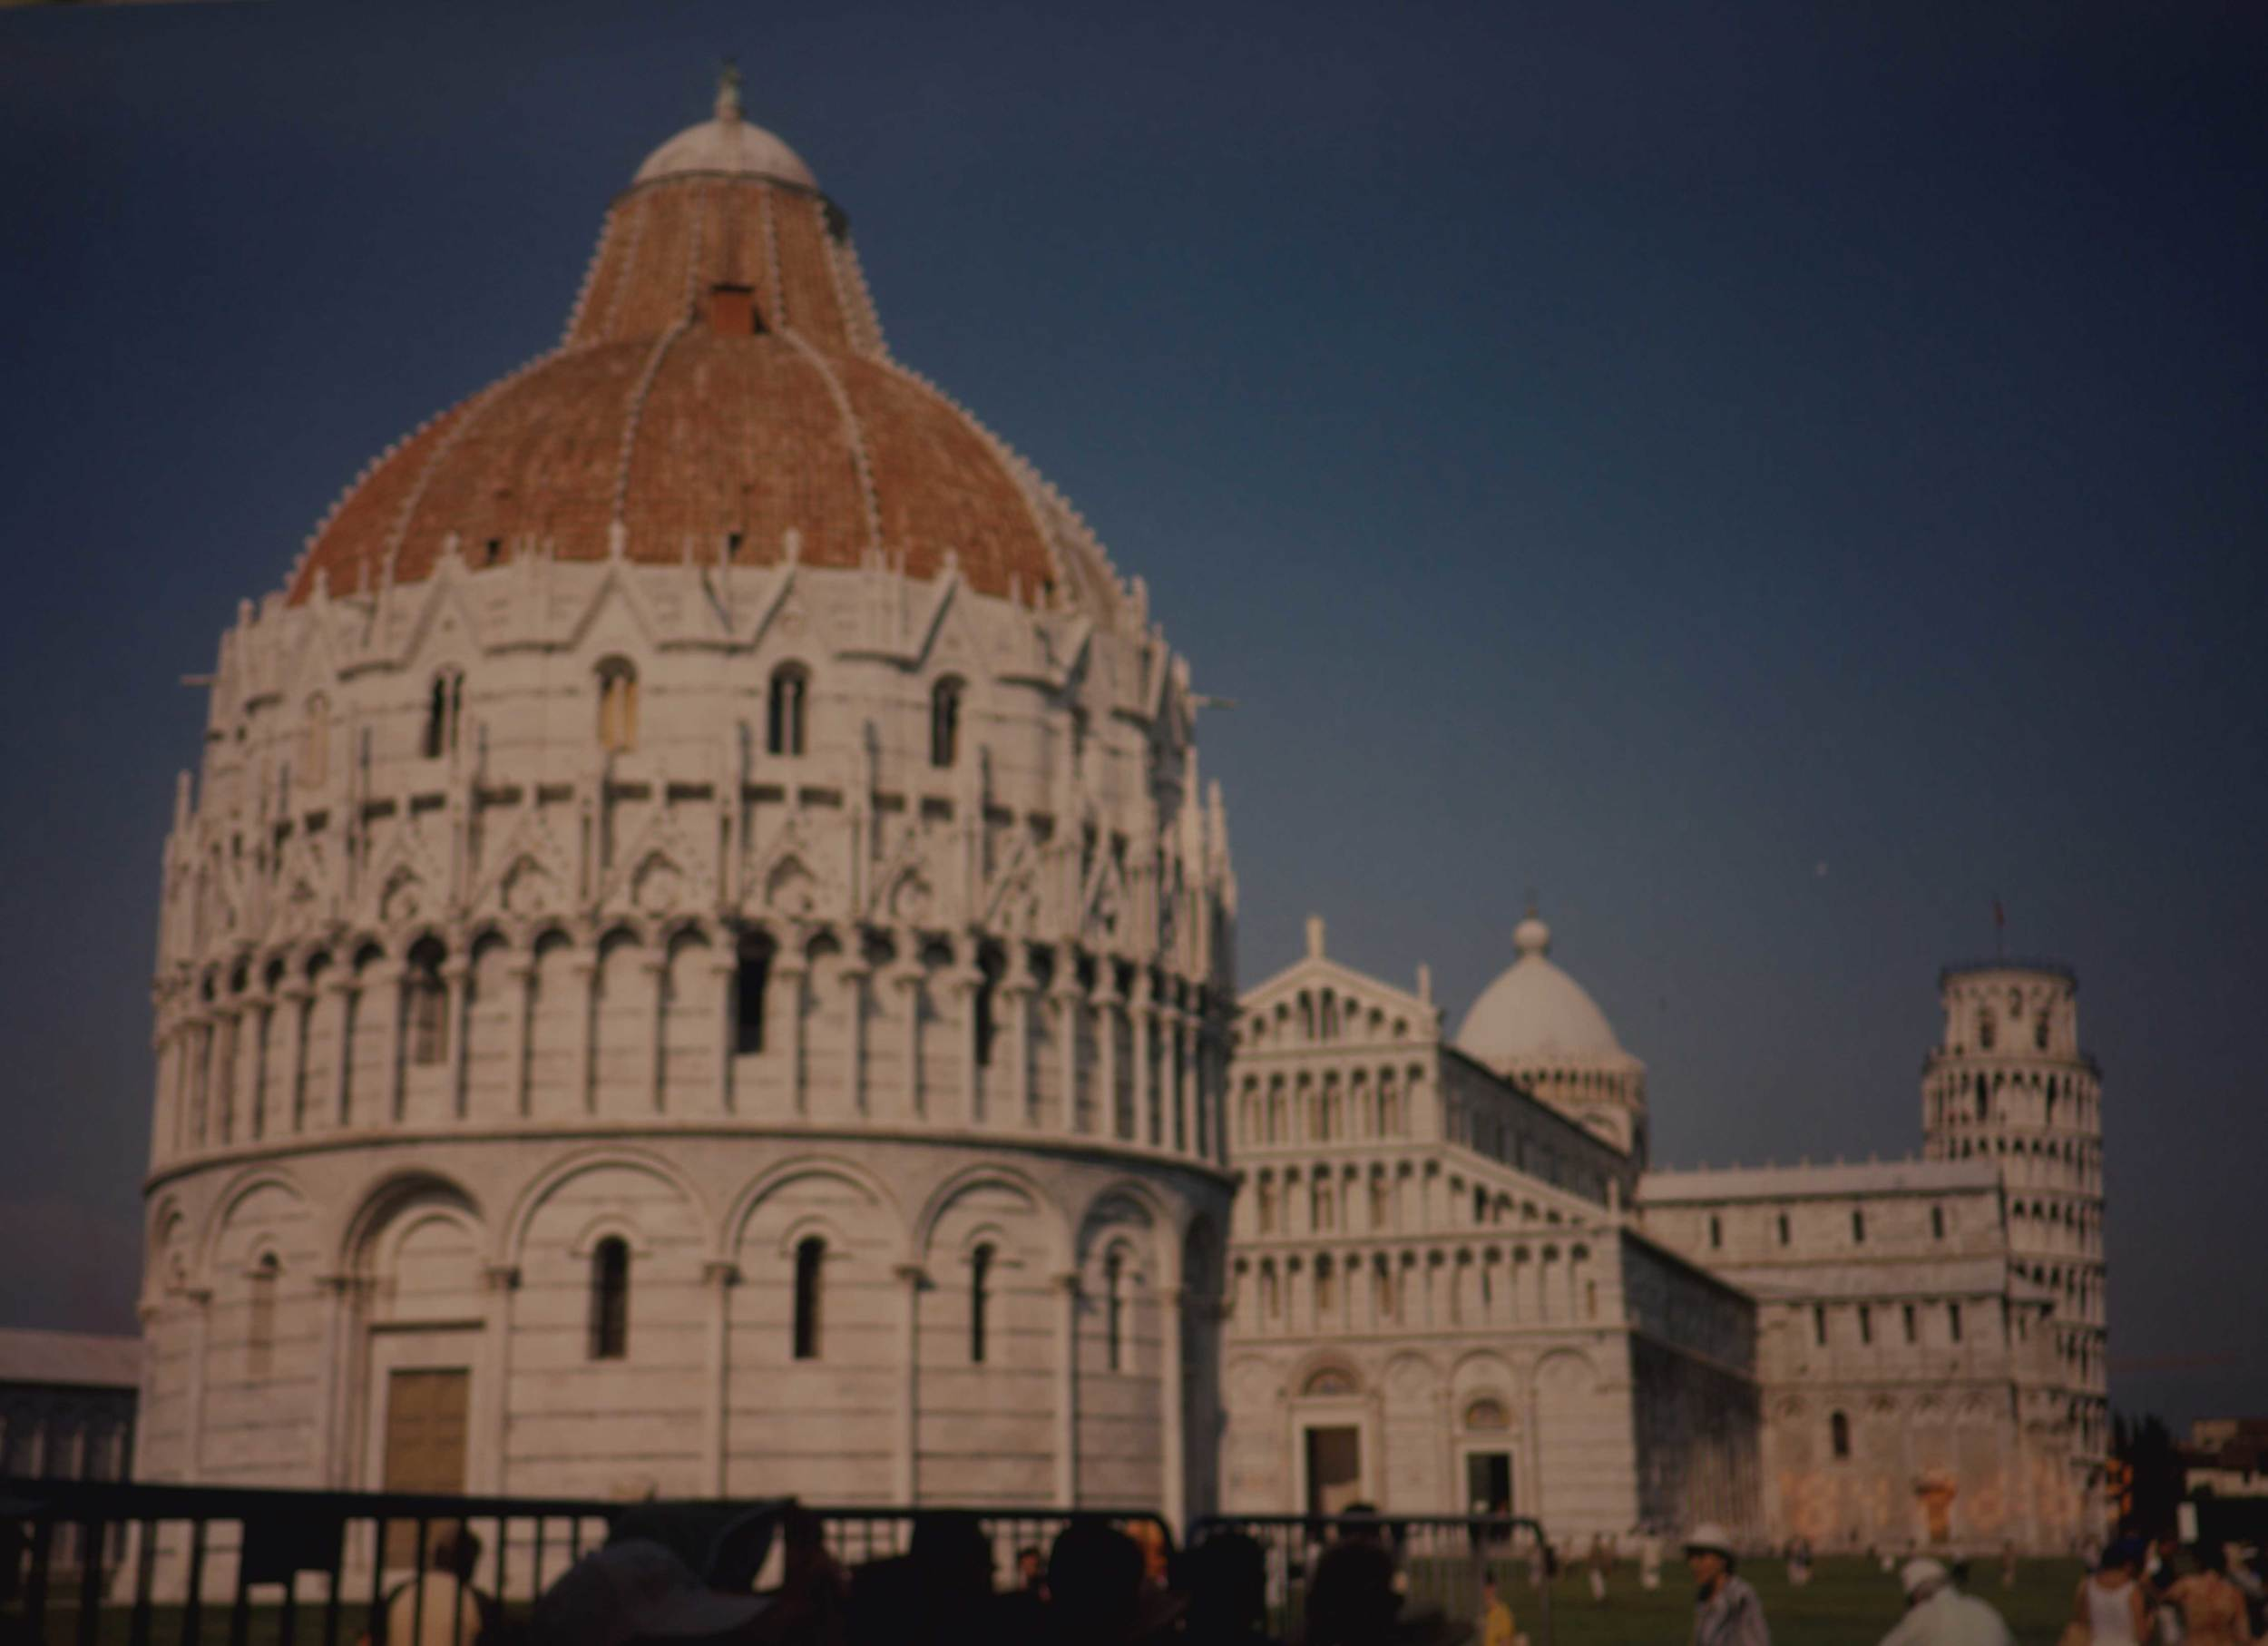 Piazza dei Miracoli with The Leaning Tower of Pisa in the background, Pisa, Italy. Image©sourcingstyle.com